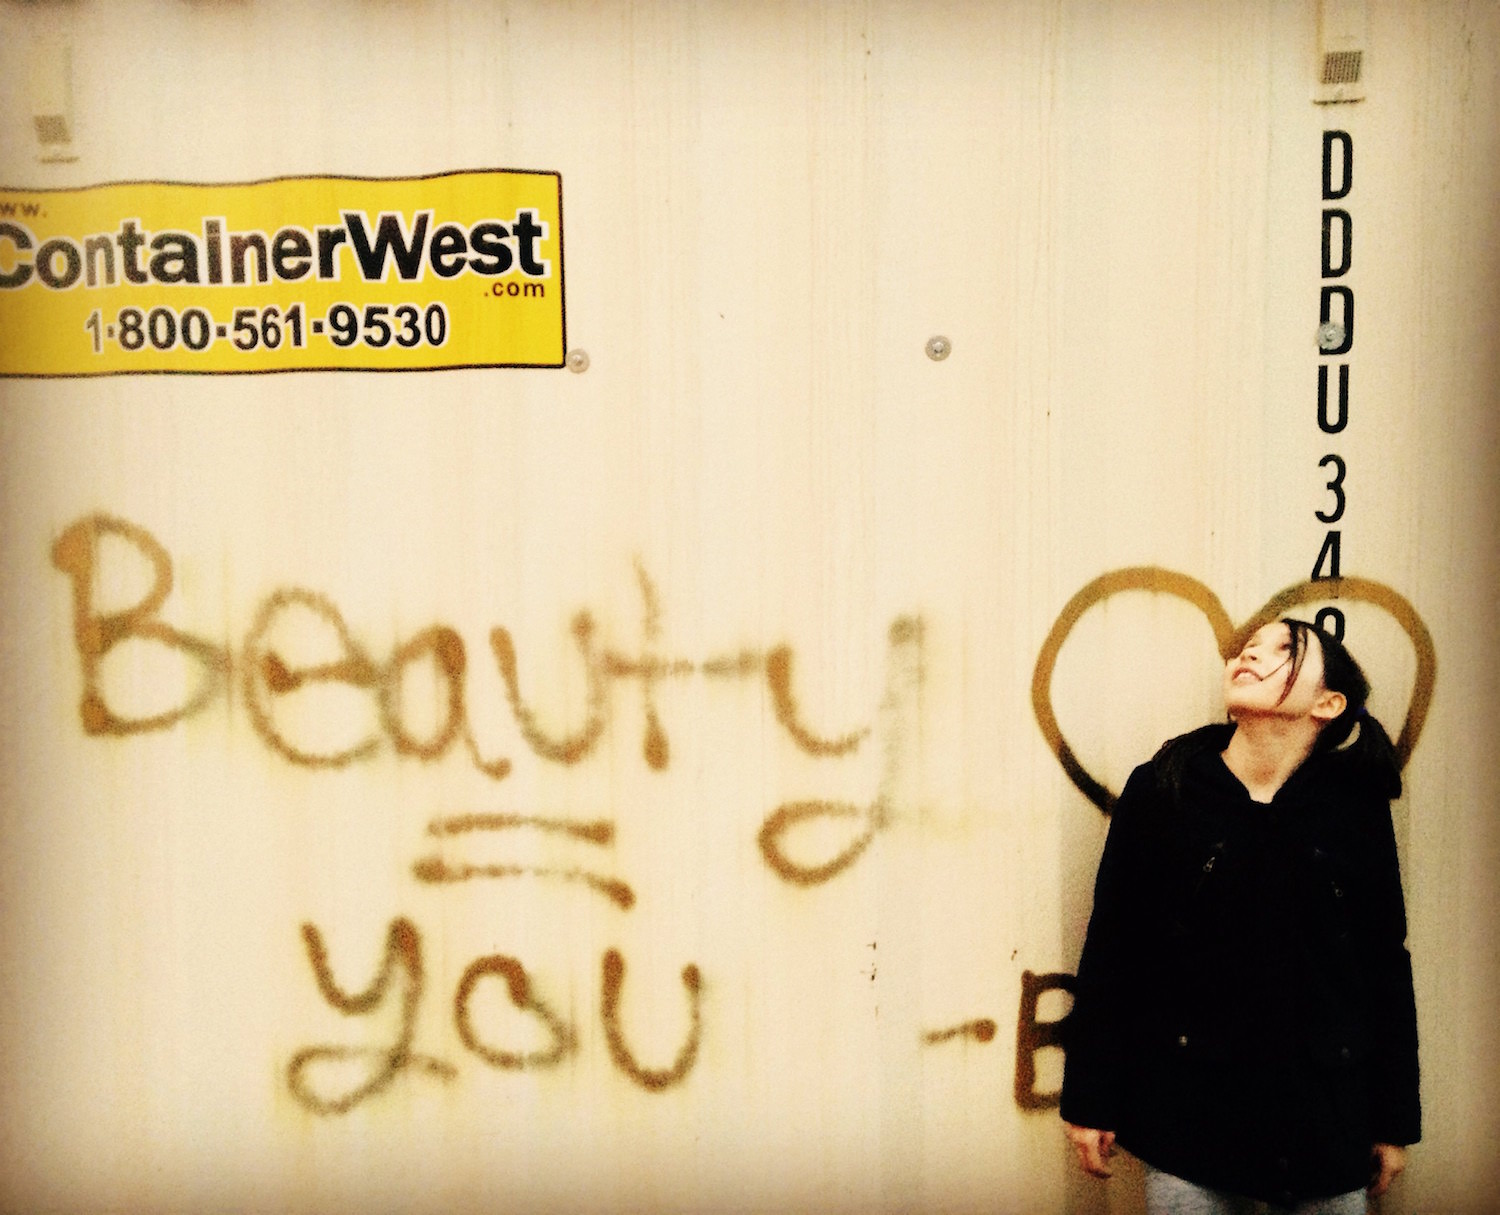 Beauty Equals You / Main Street, Vancouver, British Columbia